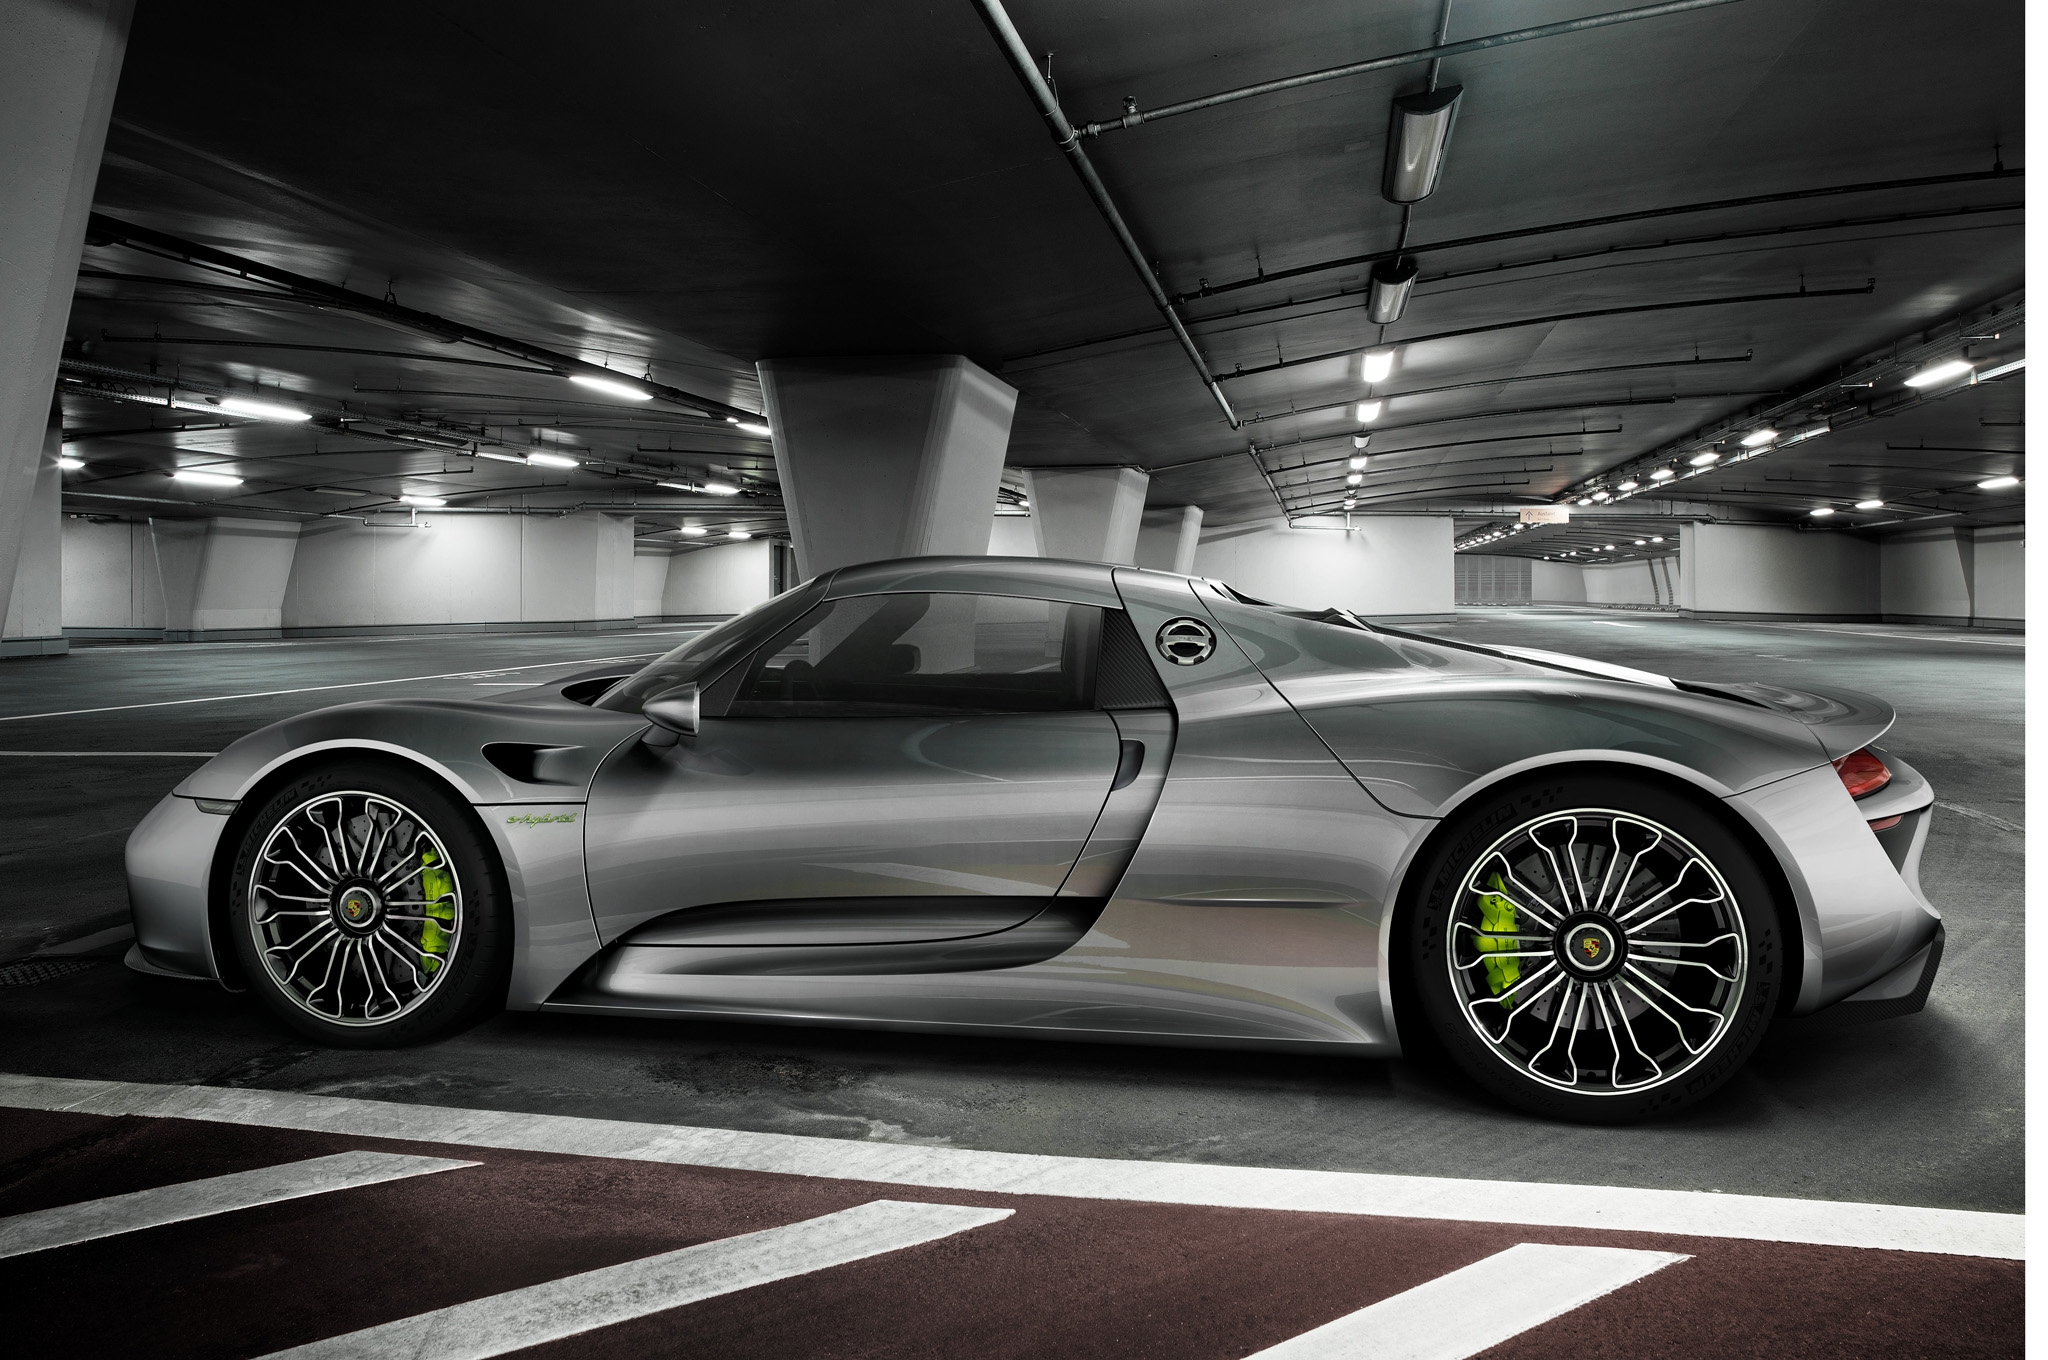 2015 Porsche 918 Spyder expensively luxurious cars